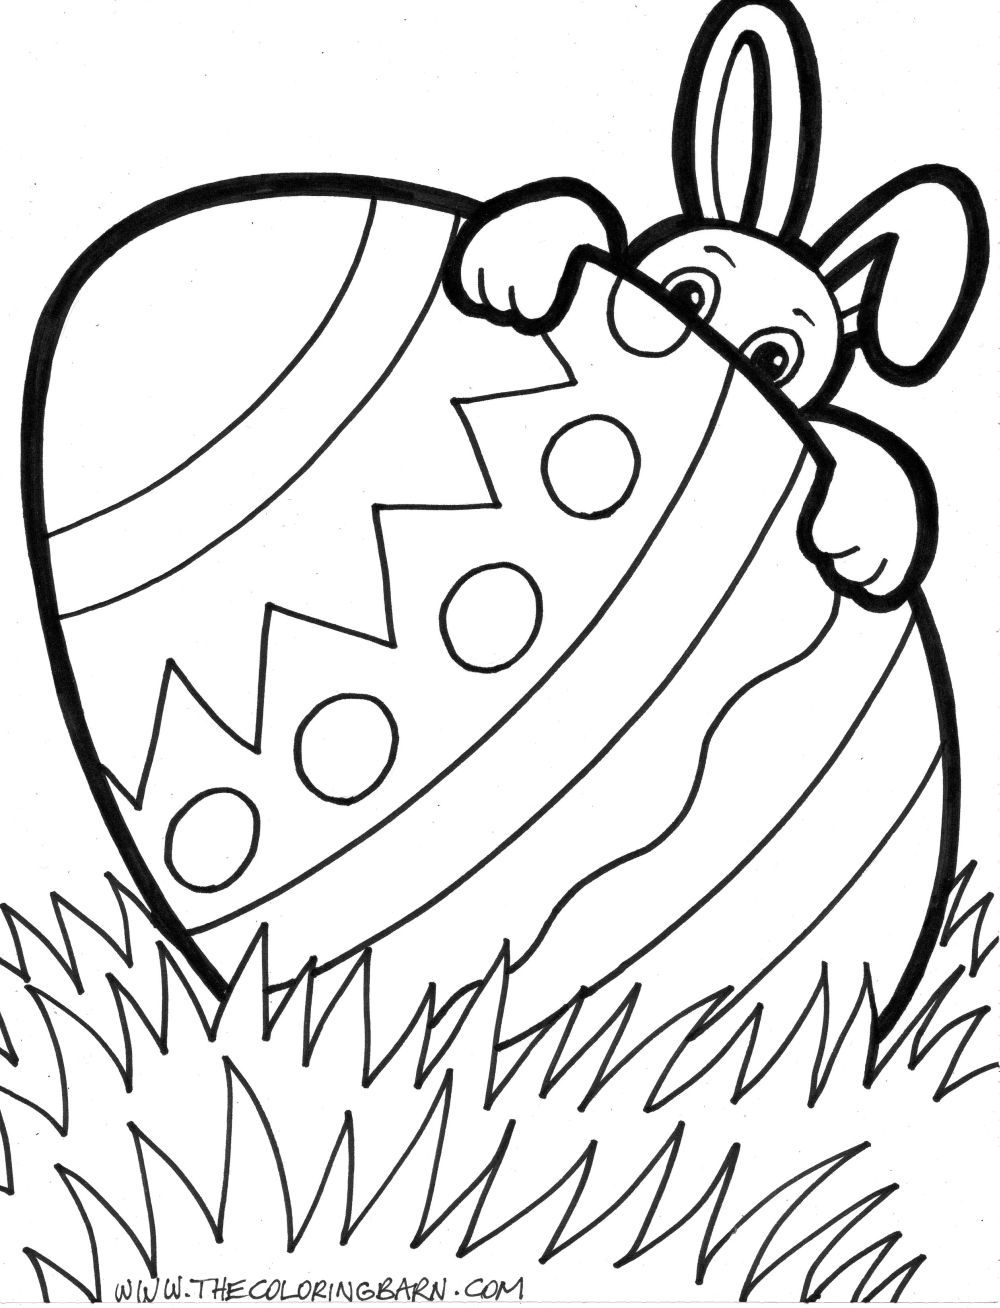 free printable easter egg coloring pages Easter Pinterest